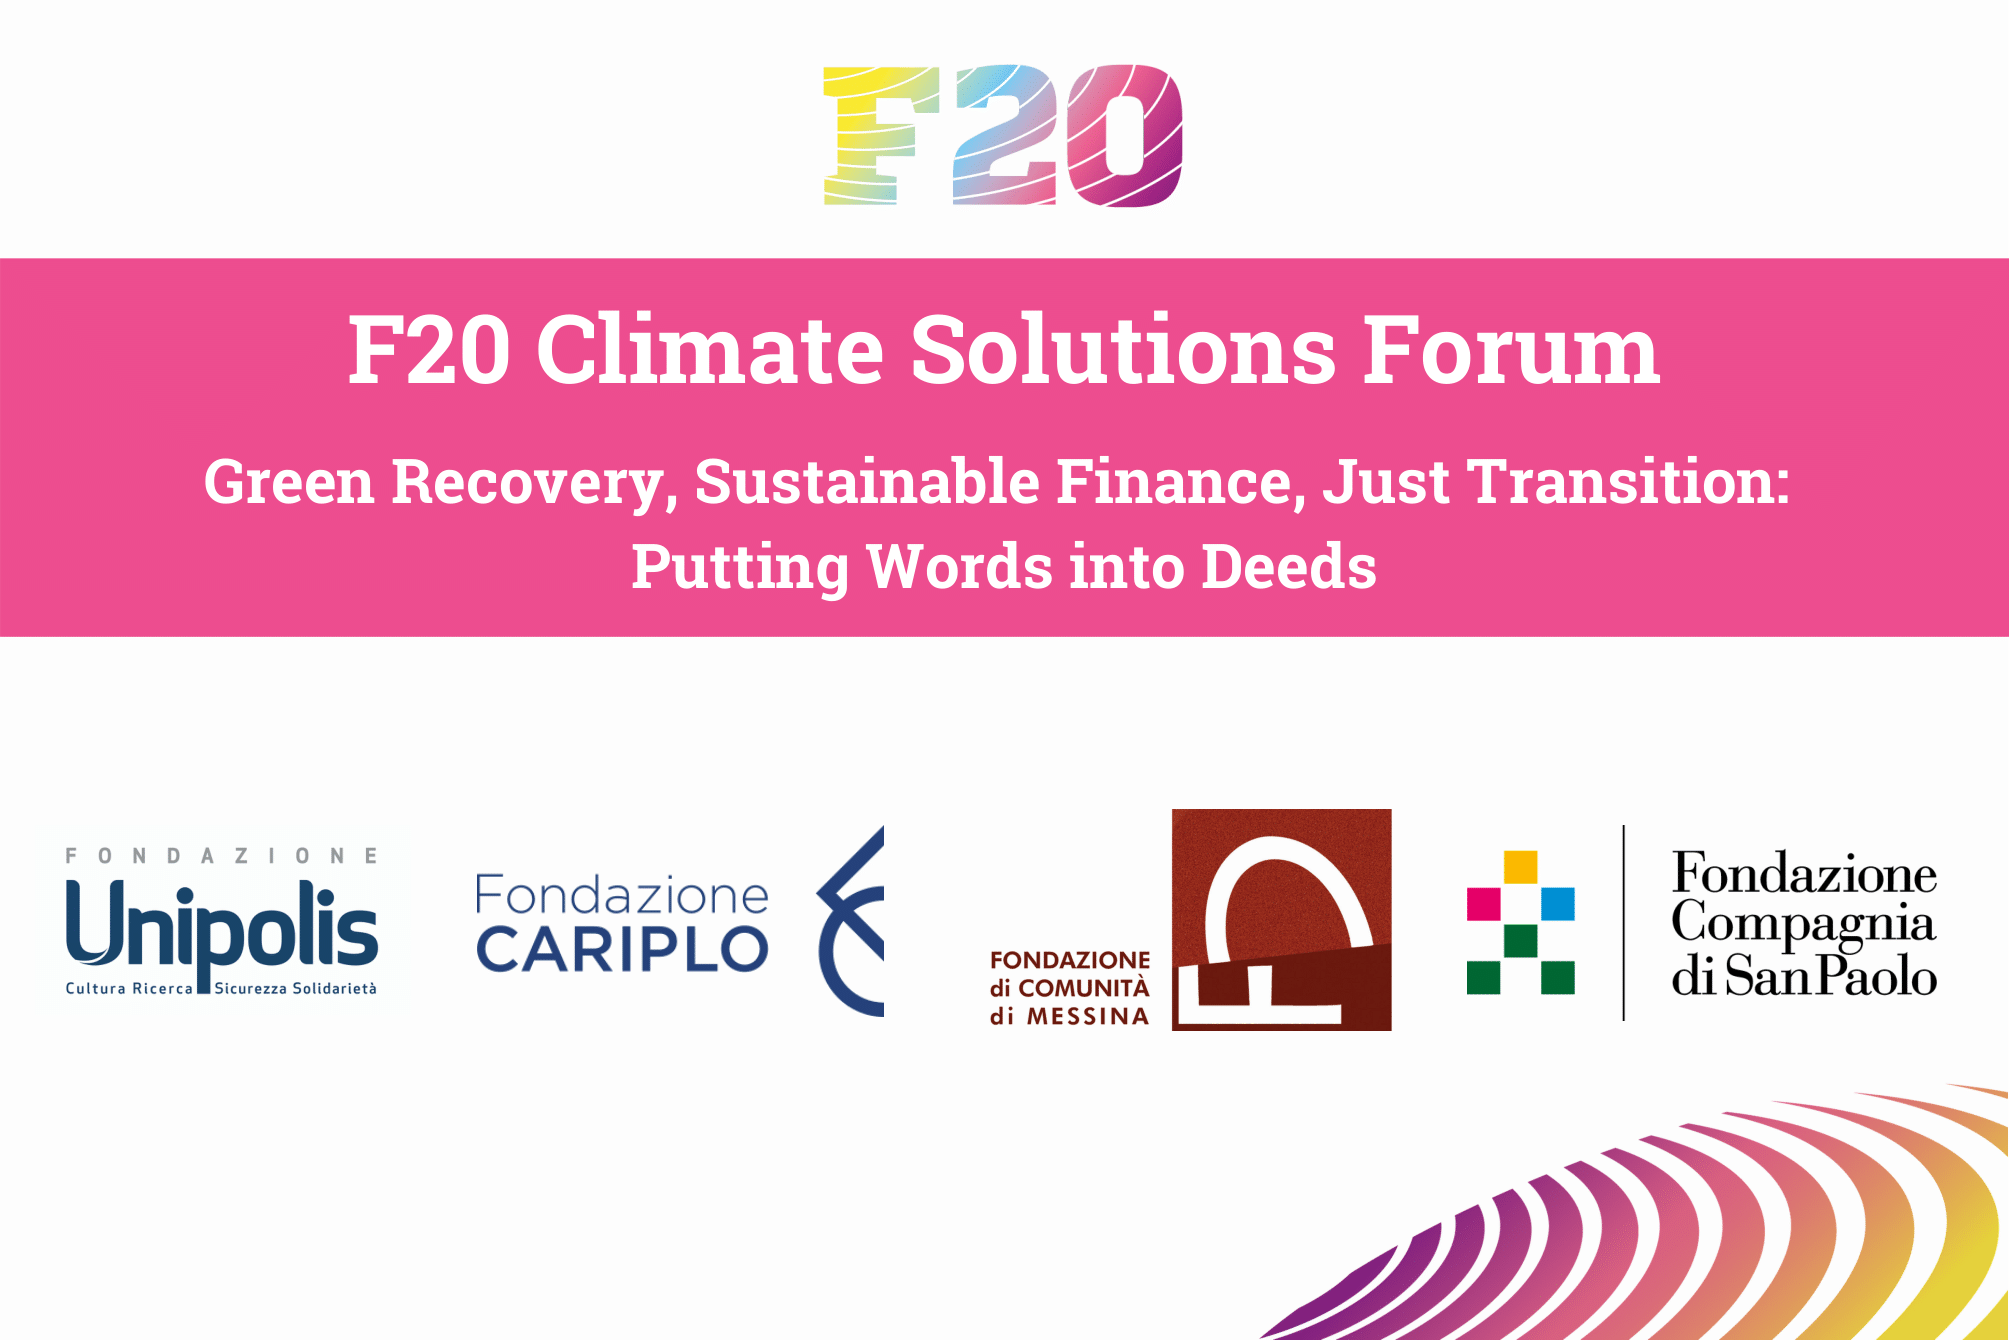 F20 Climate Solutions Forum